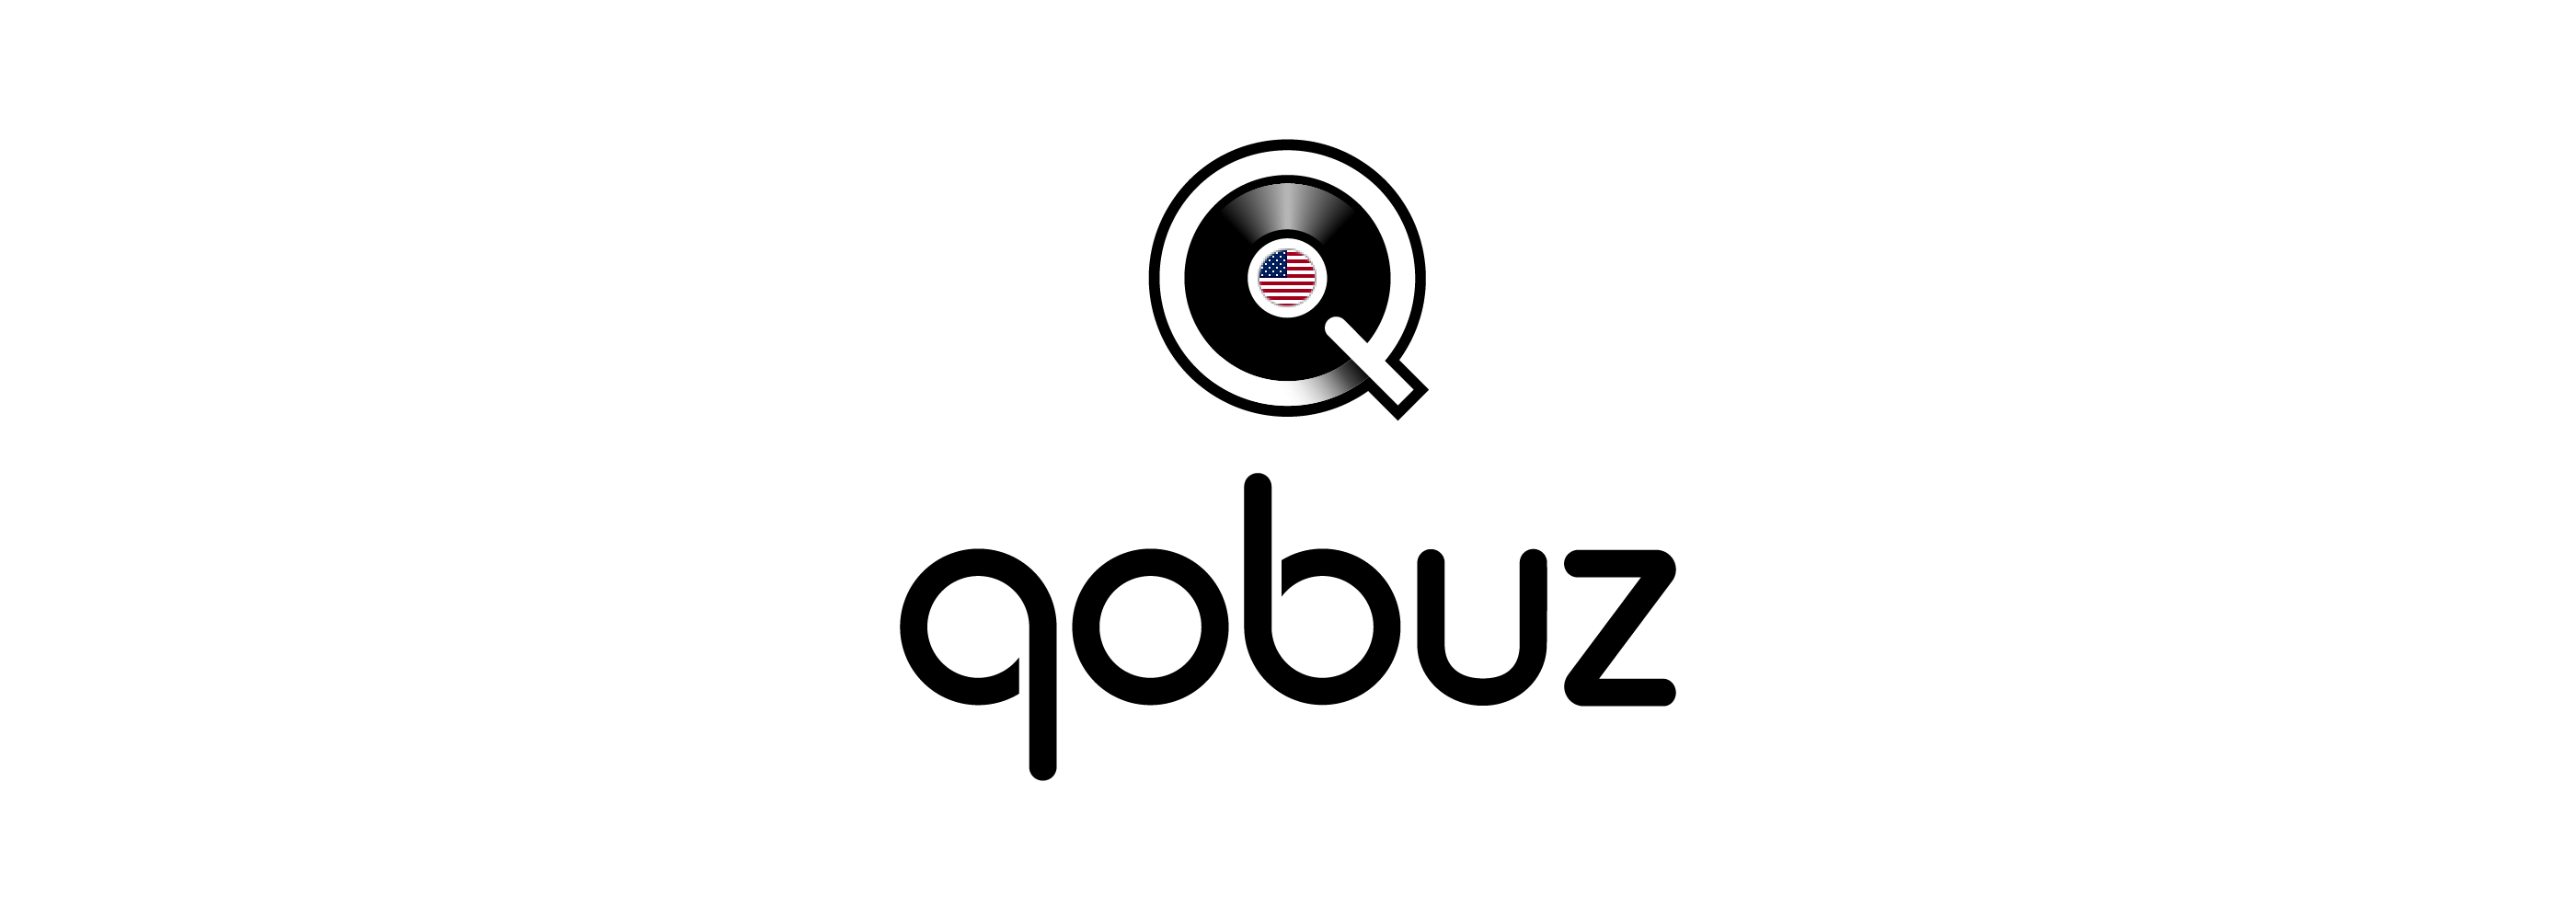 Qobuz Announces Opening of US Beta